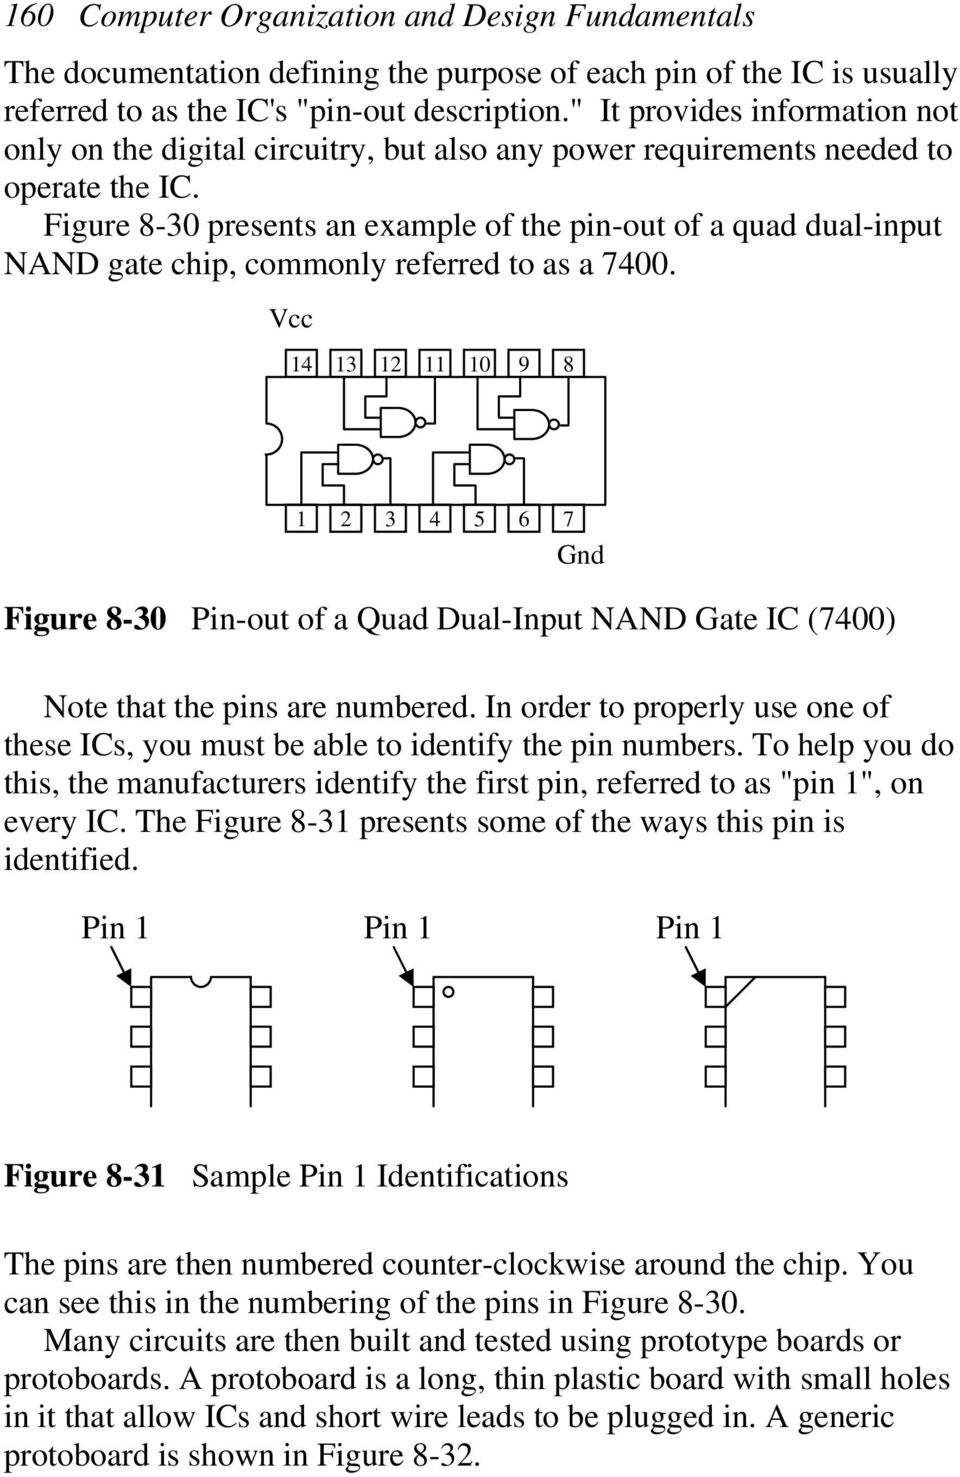 Figure 8-3 presents an example of the pin-out of a quad dual-input NND gate chip, commonly referred to as a 74.